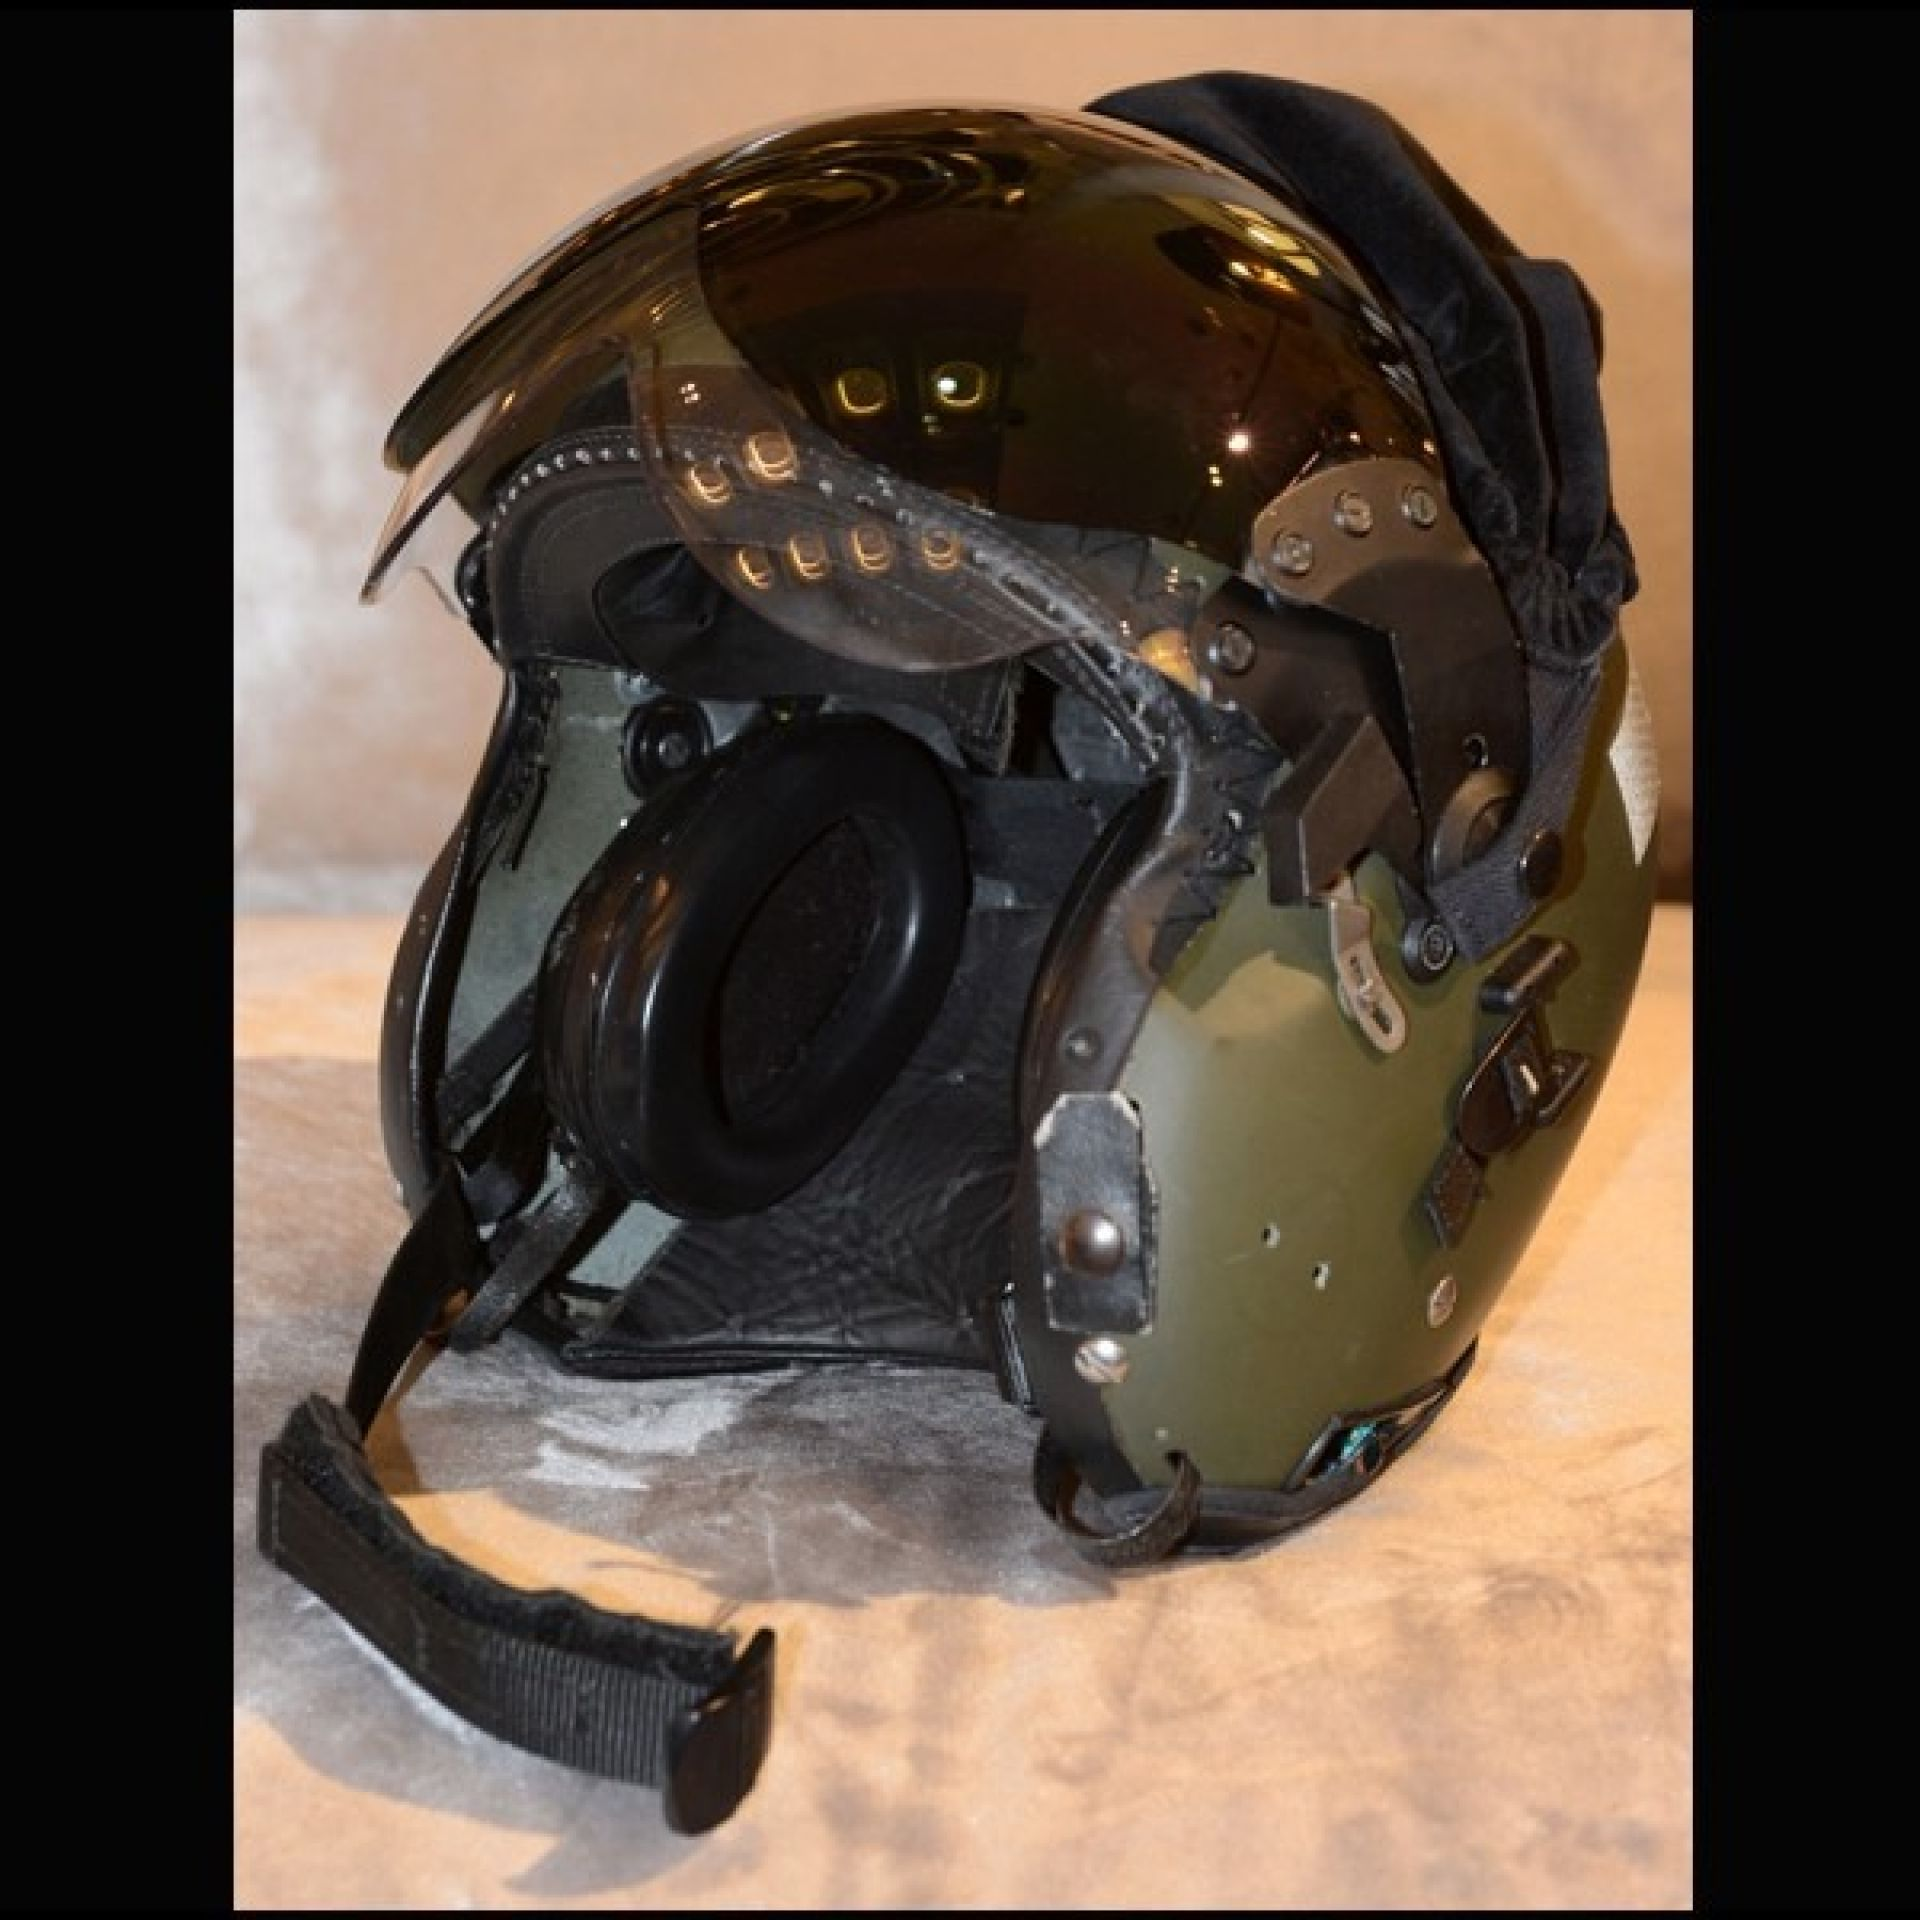 ROYAL AIR FORCE FIGHTER PLANE PILOT HELMET 1960 SINGLE PIECE PC-ROYAL AIR FORCE